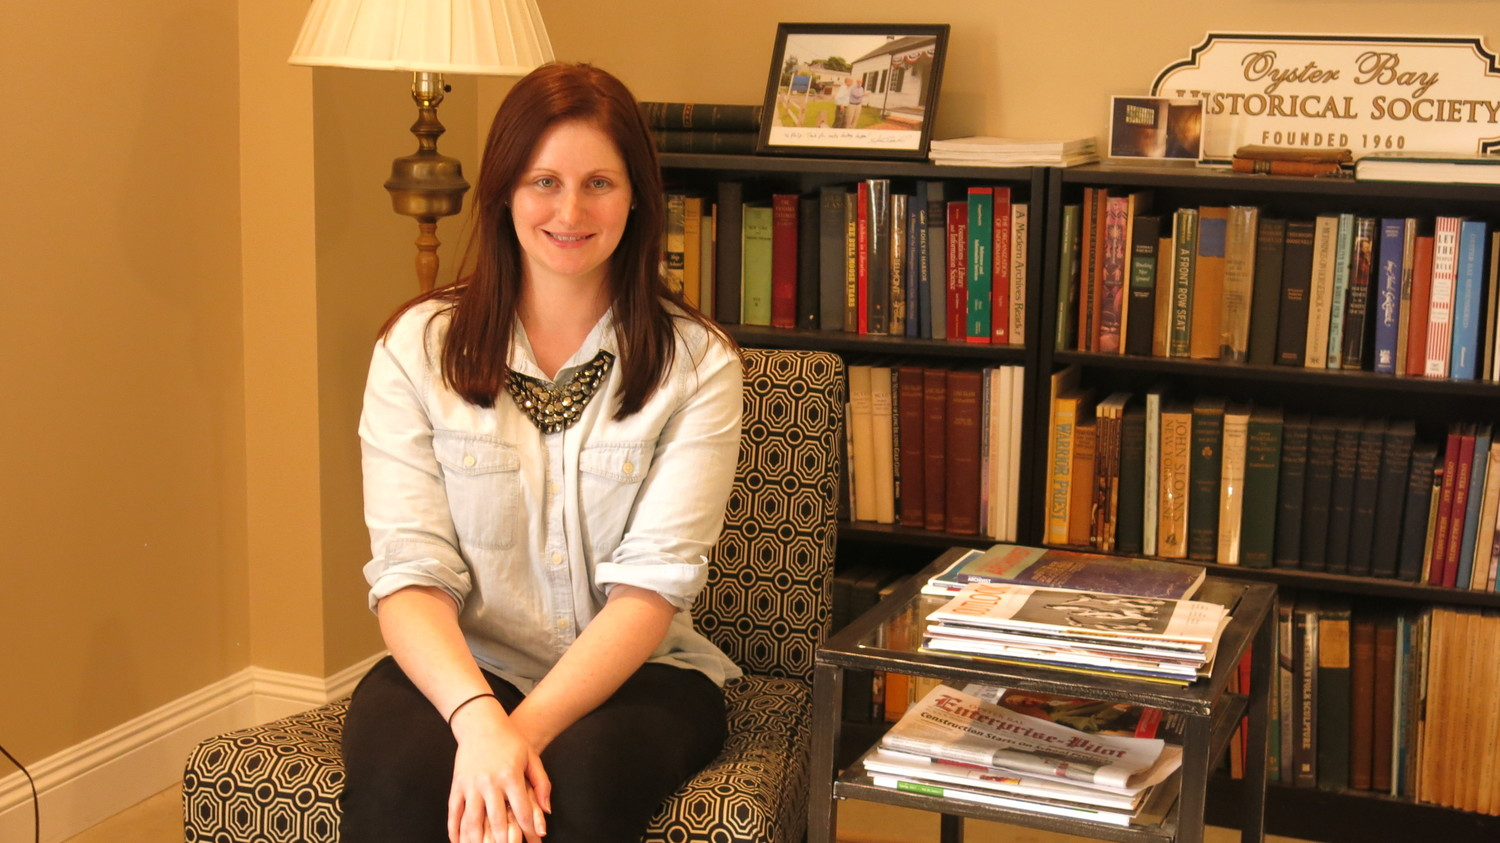 Photo by Laura Lane